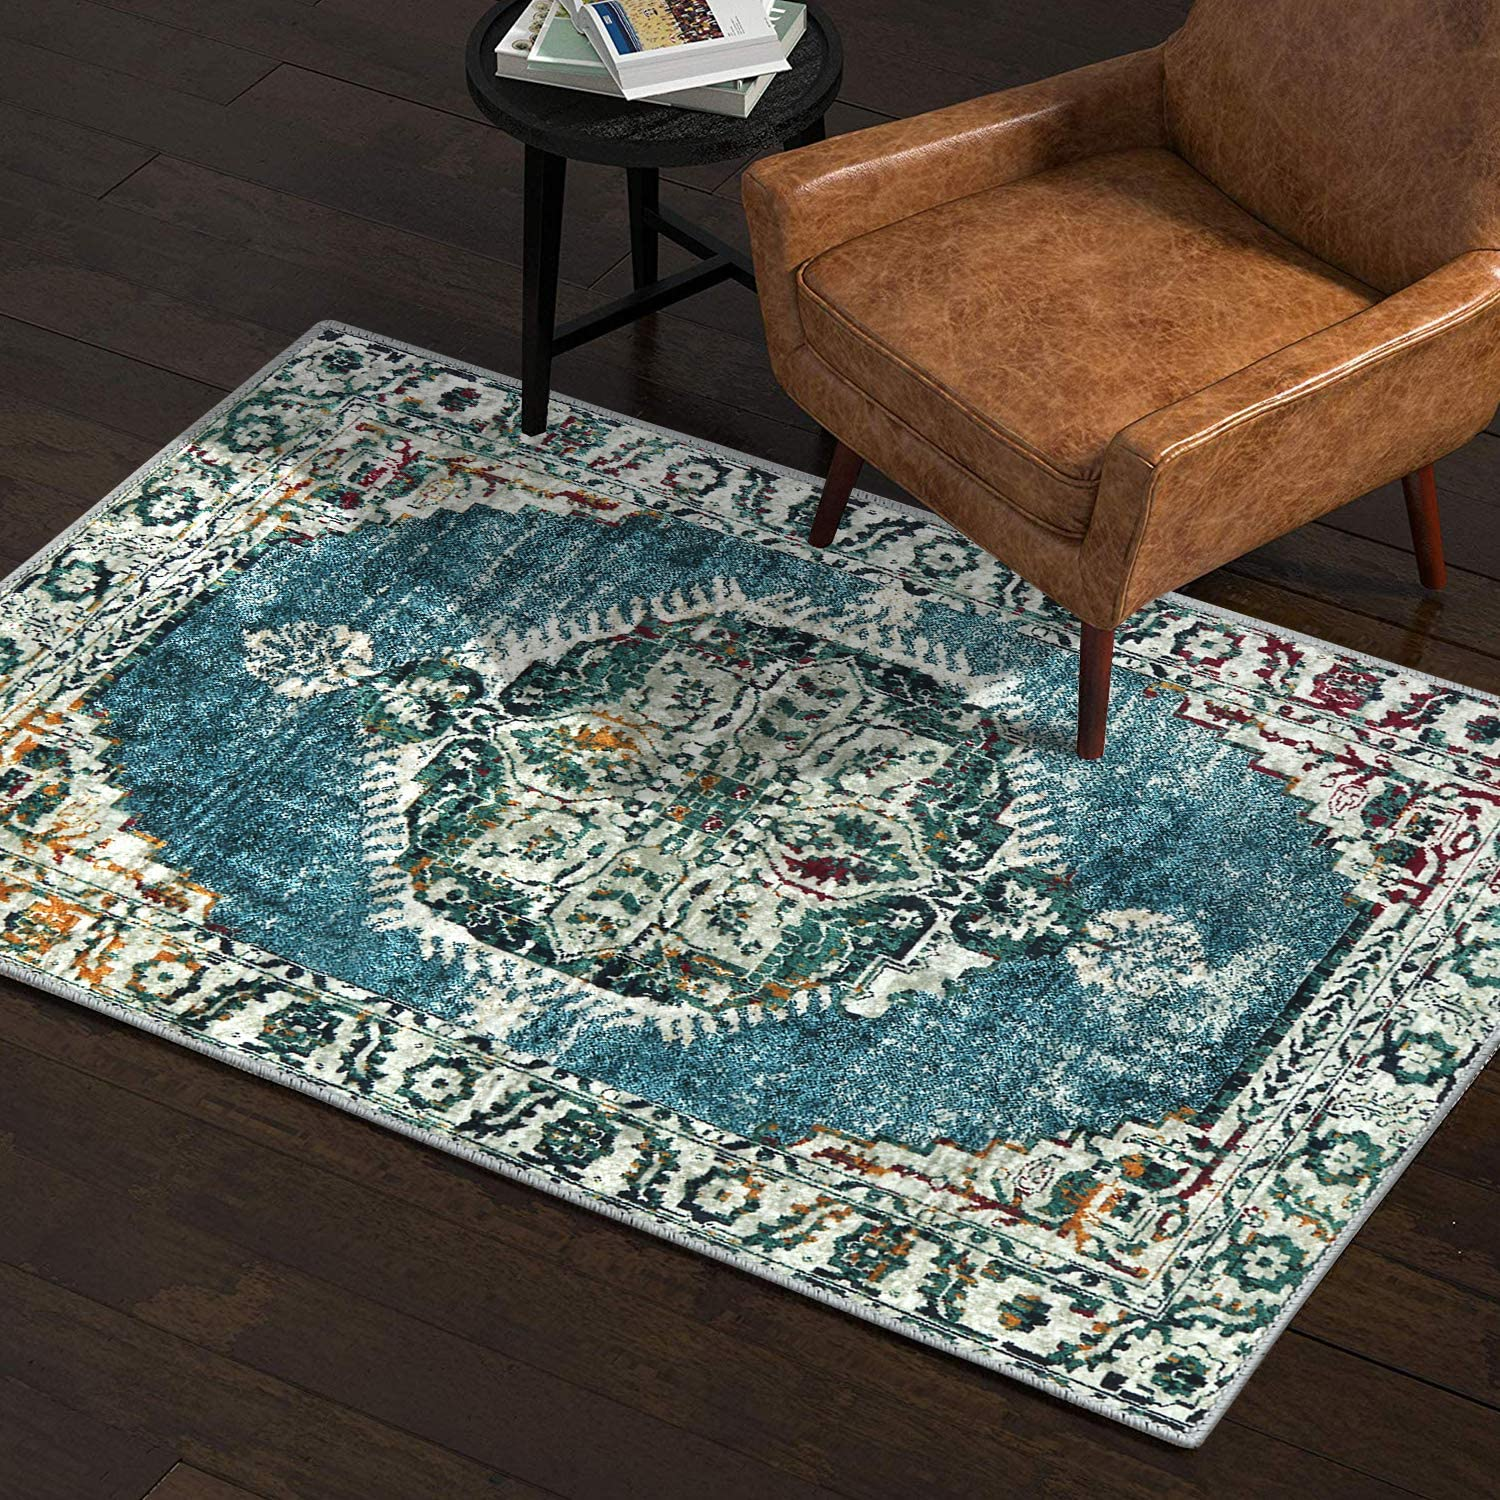 LEEVAN Faux Wool Area Rug 2 x 3 ft Traditional Rectangle Throw Runner Rug Non-Slip Backing Soft Wool Floor Carpet for Sofa Living Room Bedroom Modern Accent Home Decor